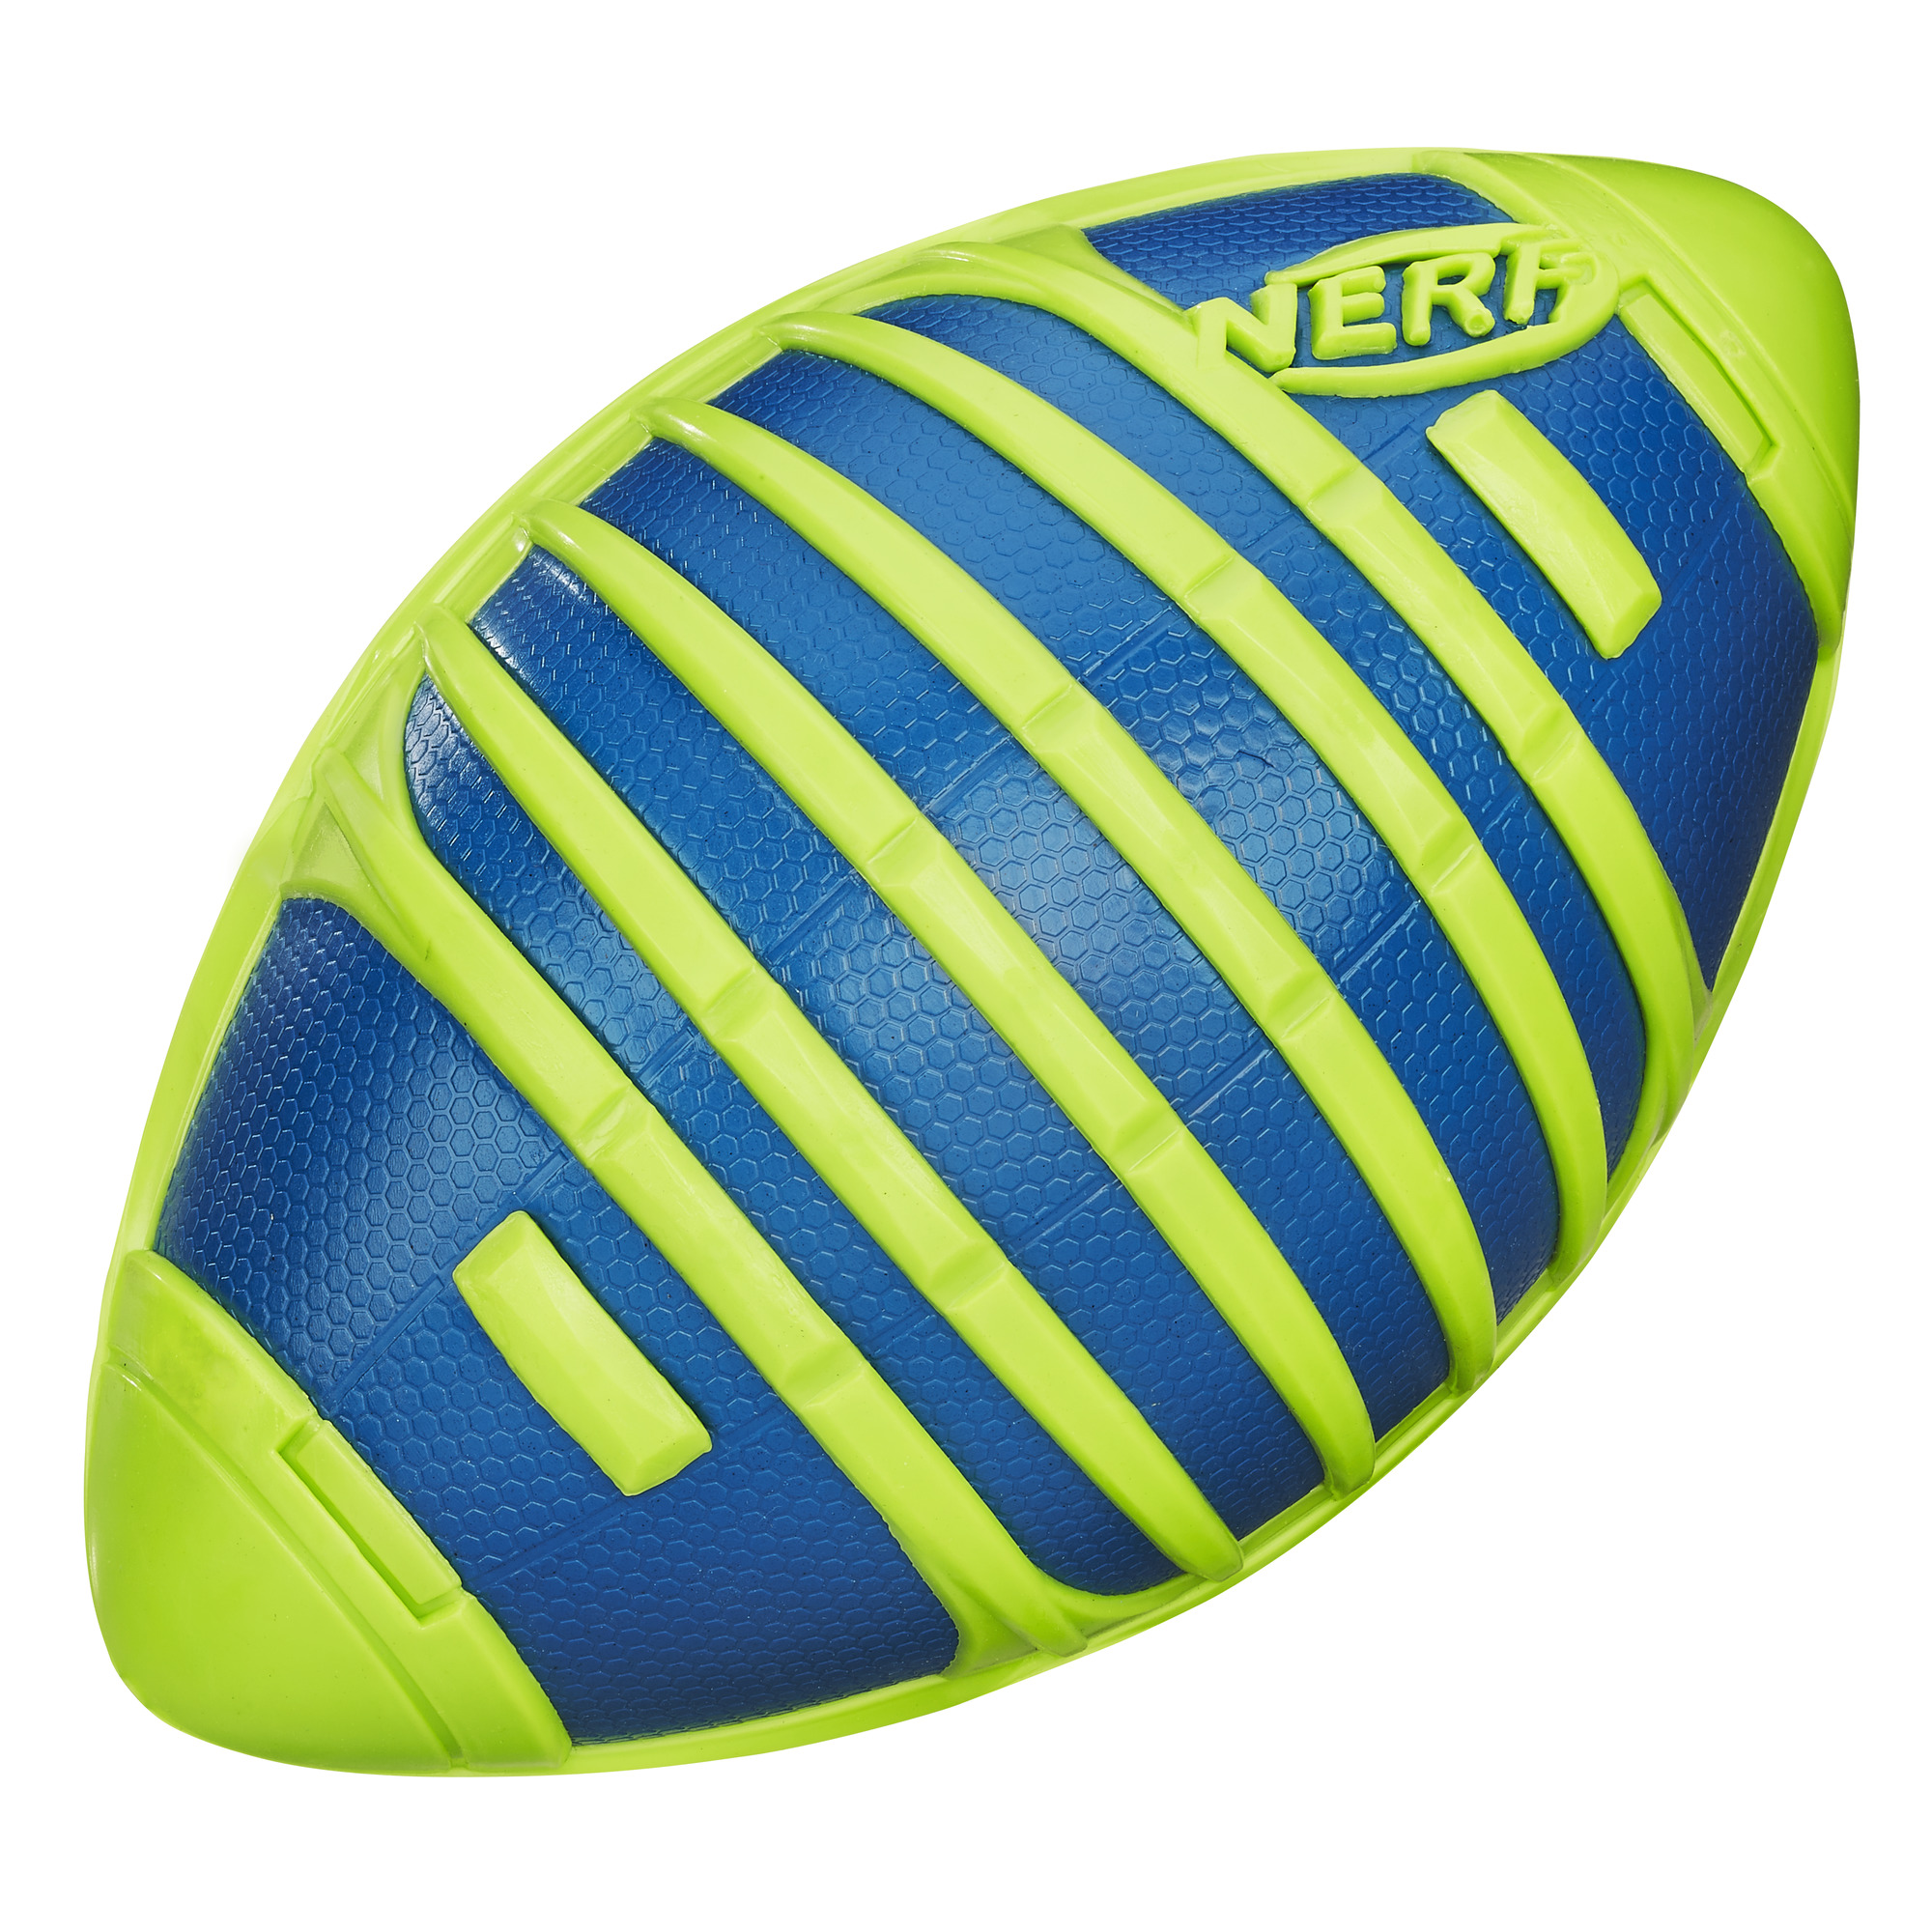 Nerf Sports Weather Blitz Football (blue) by Hasbro